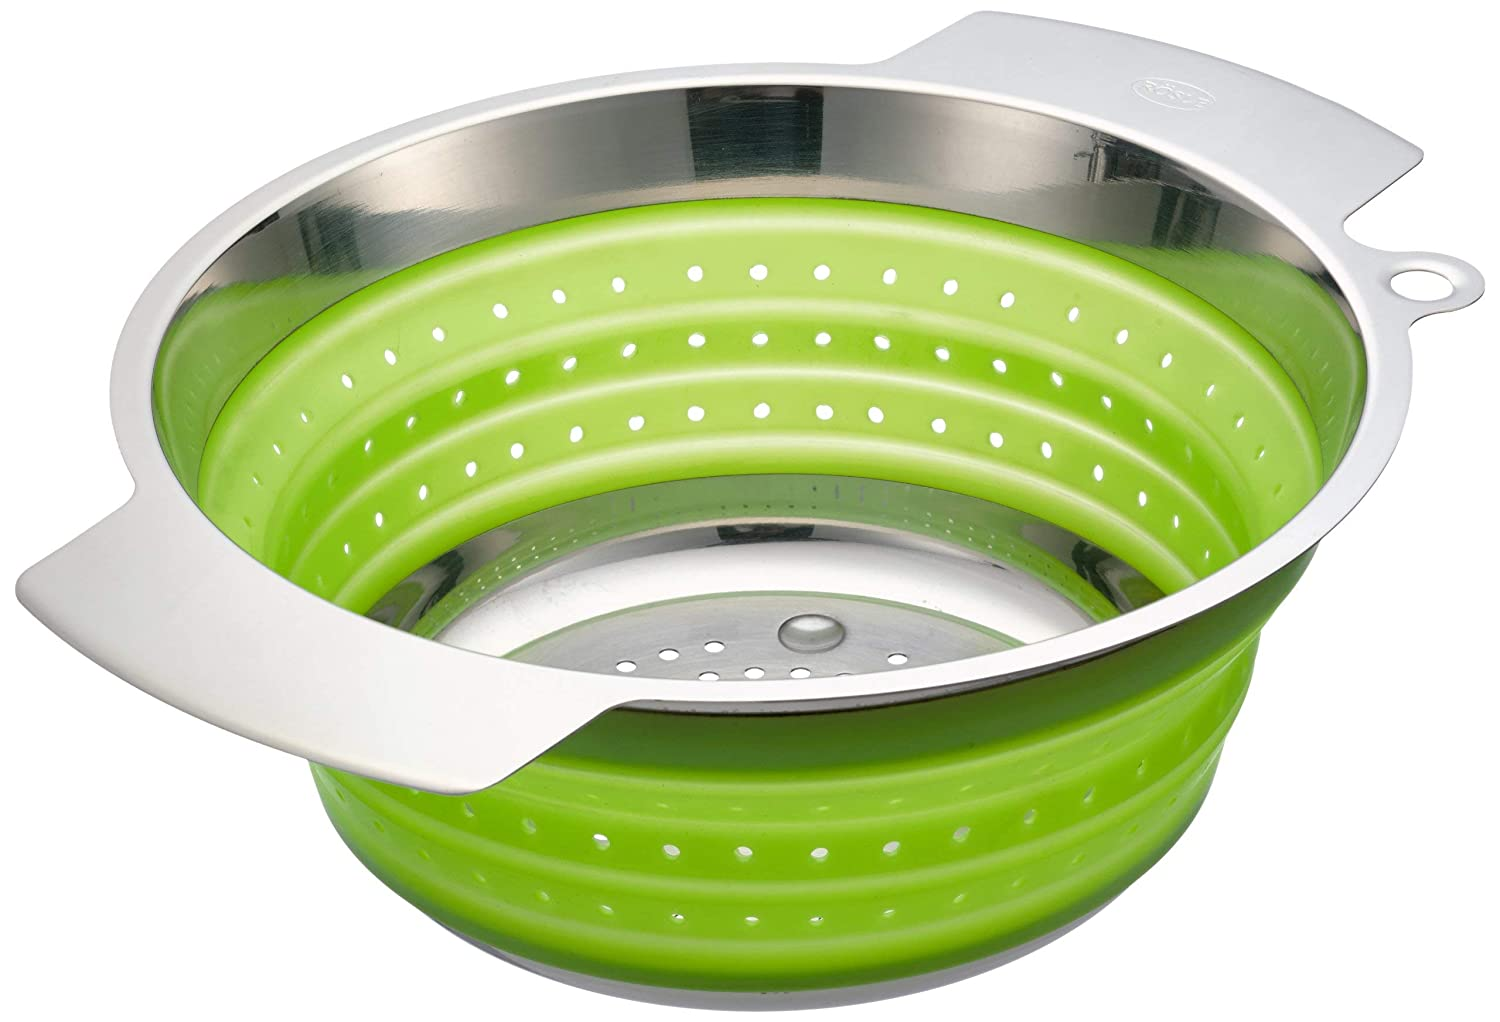 Rösle Stainless Steel Collapsible Colander, Green, 10-inch